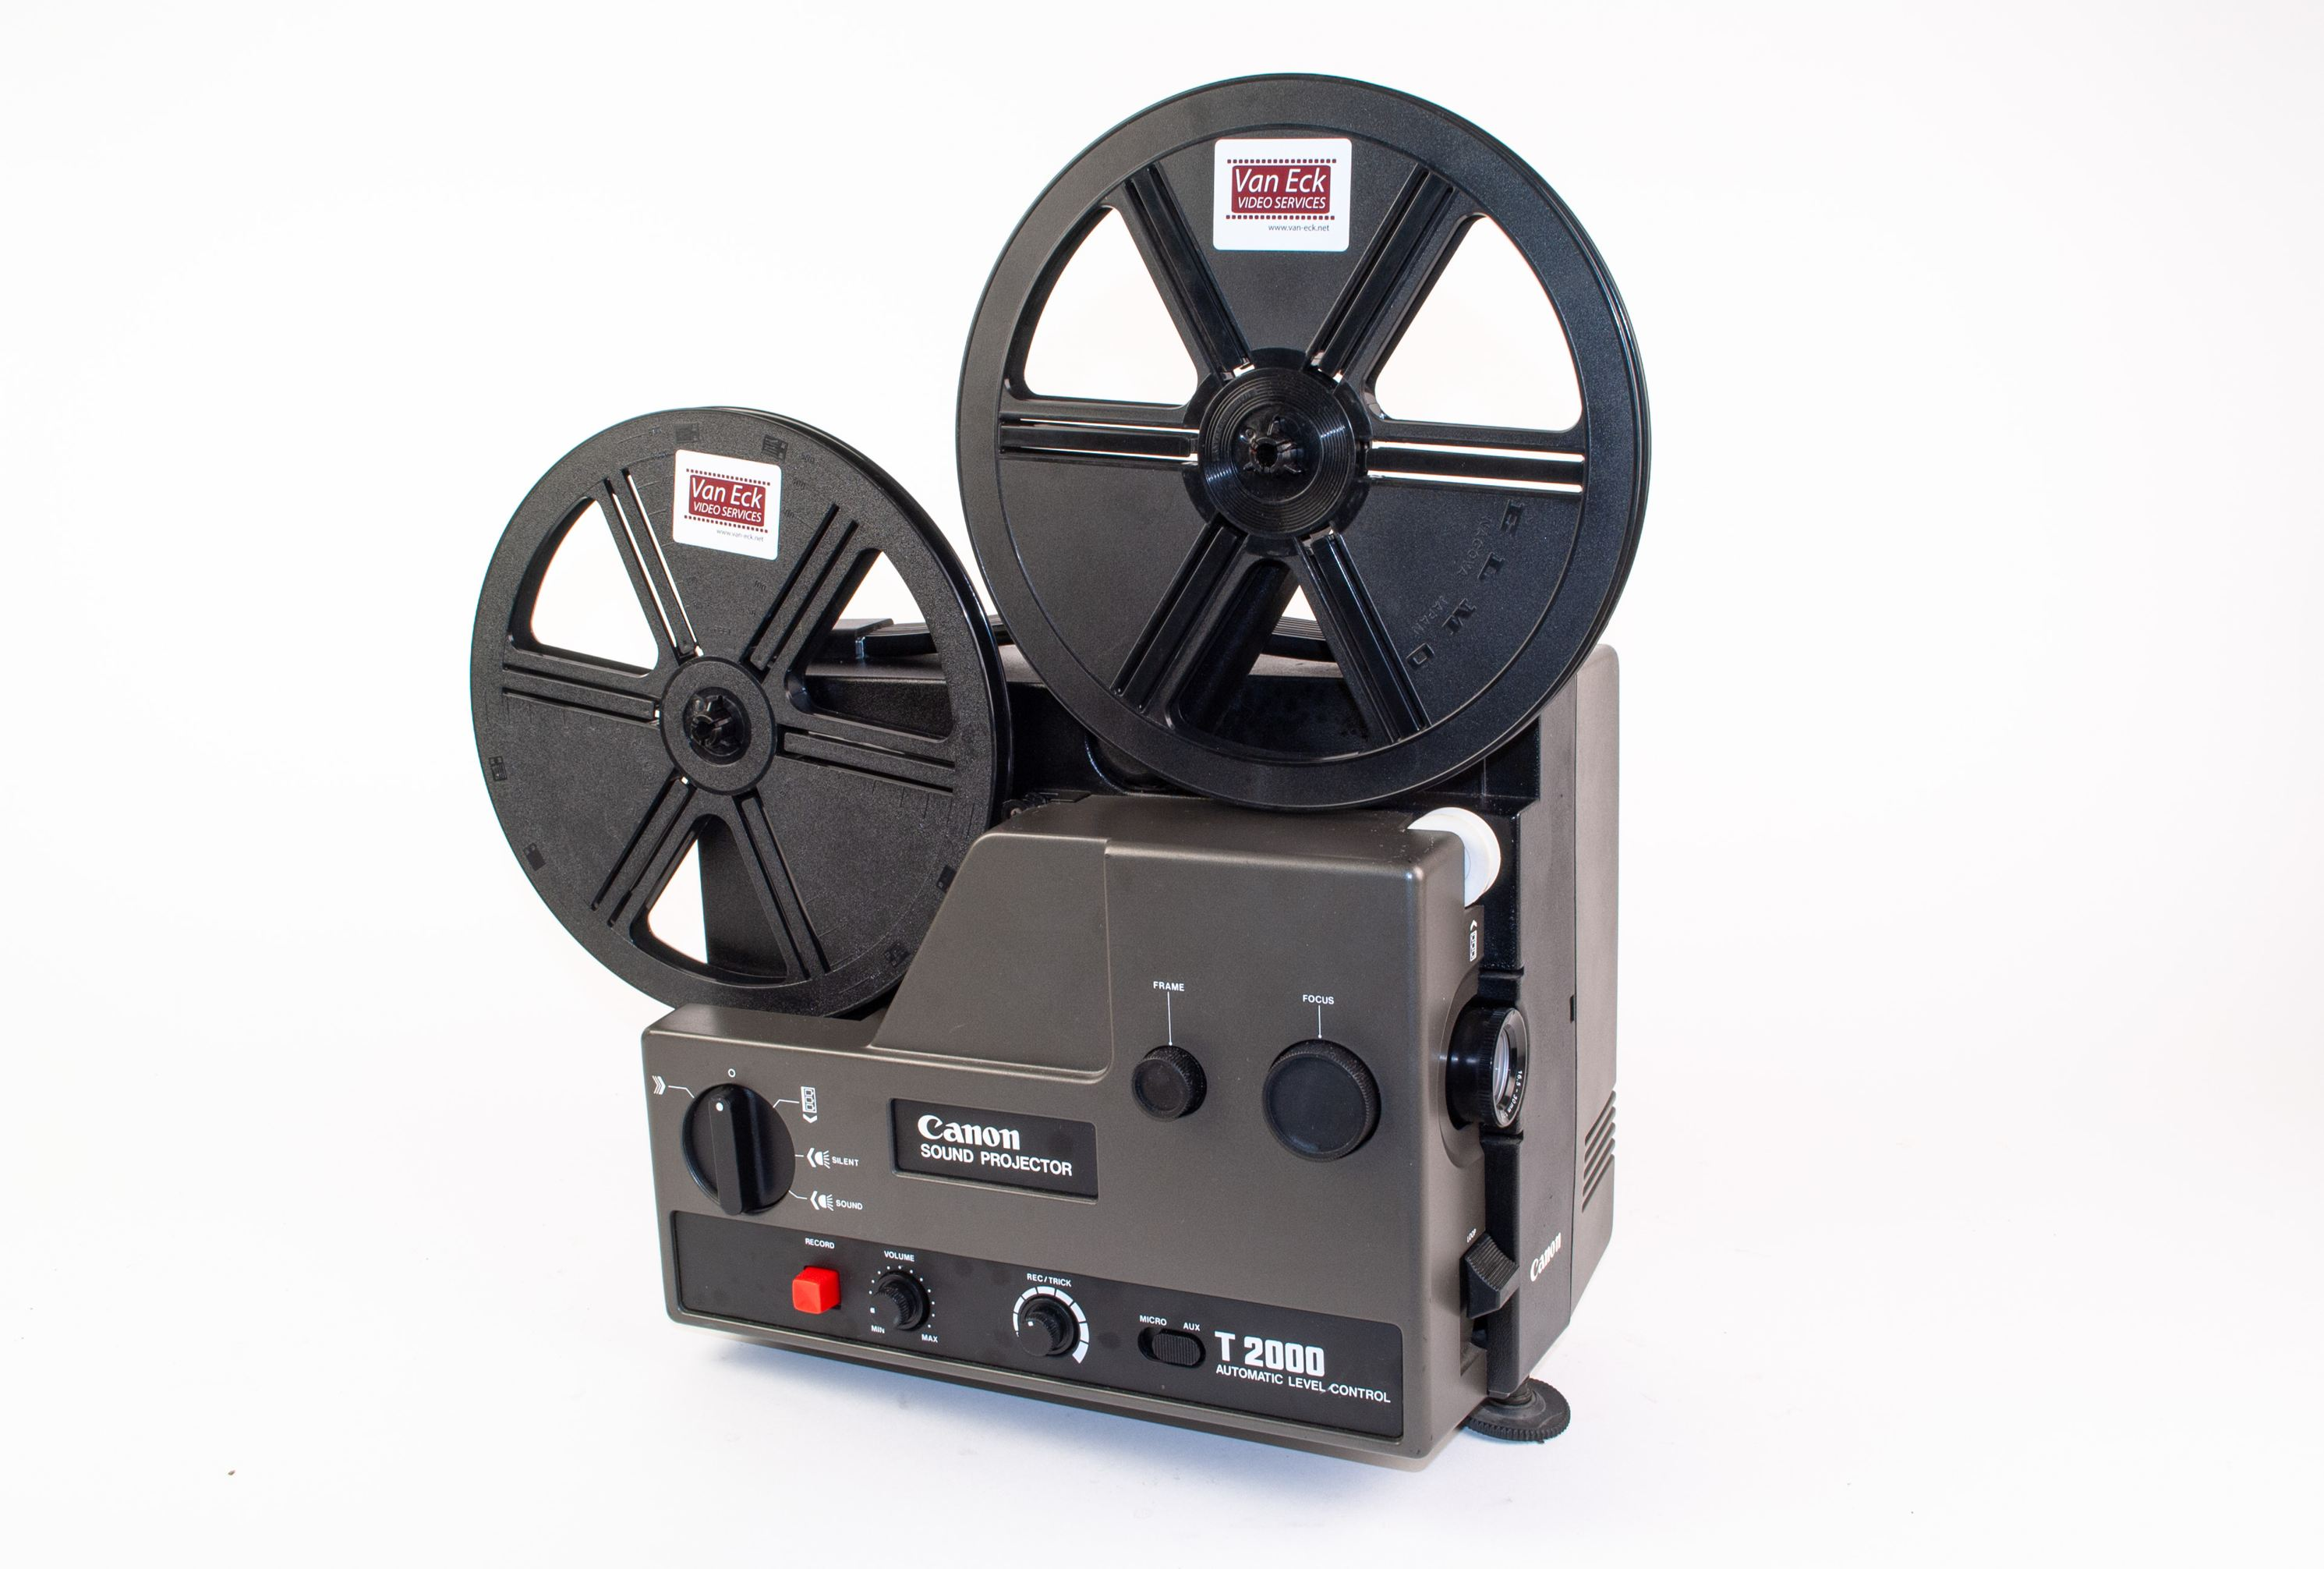 T2000 Sound Projector (AC model)